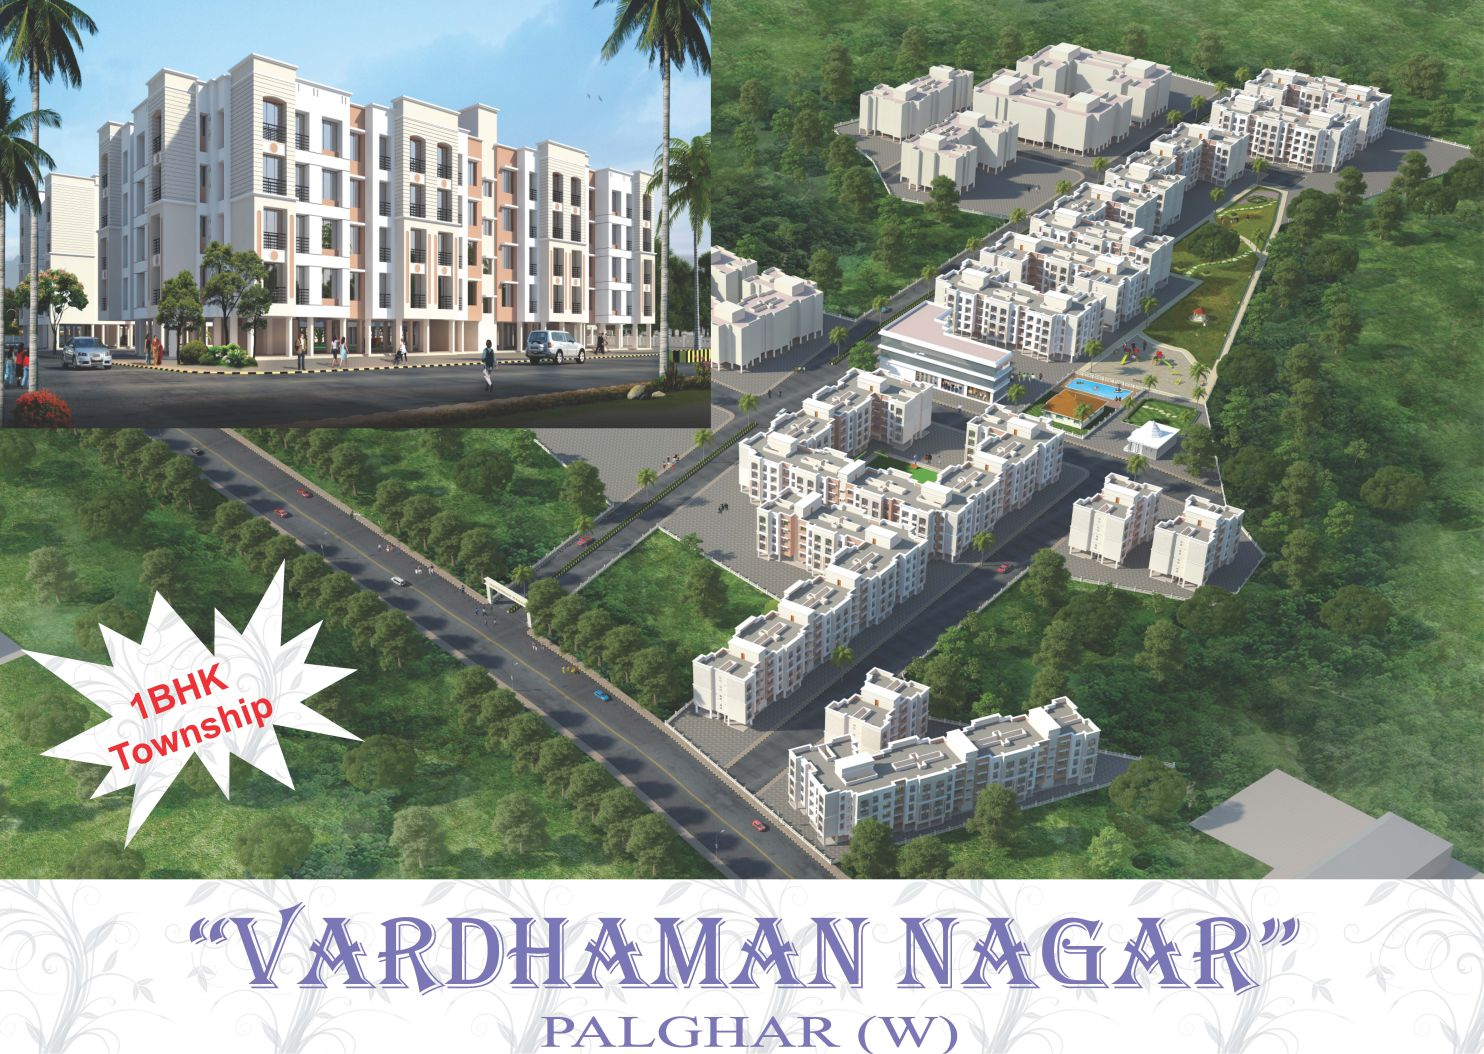 Vardhman Nagar - Palghar West, India